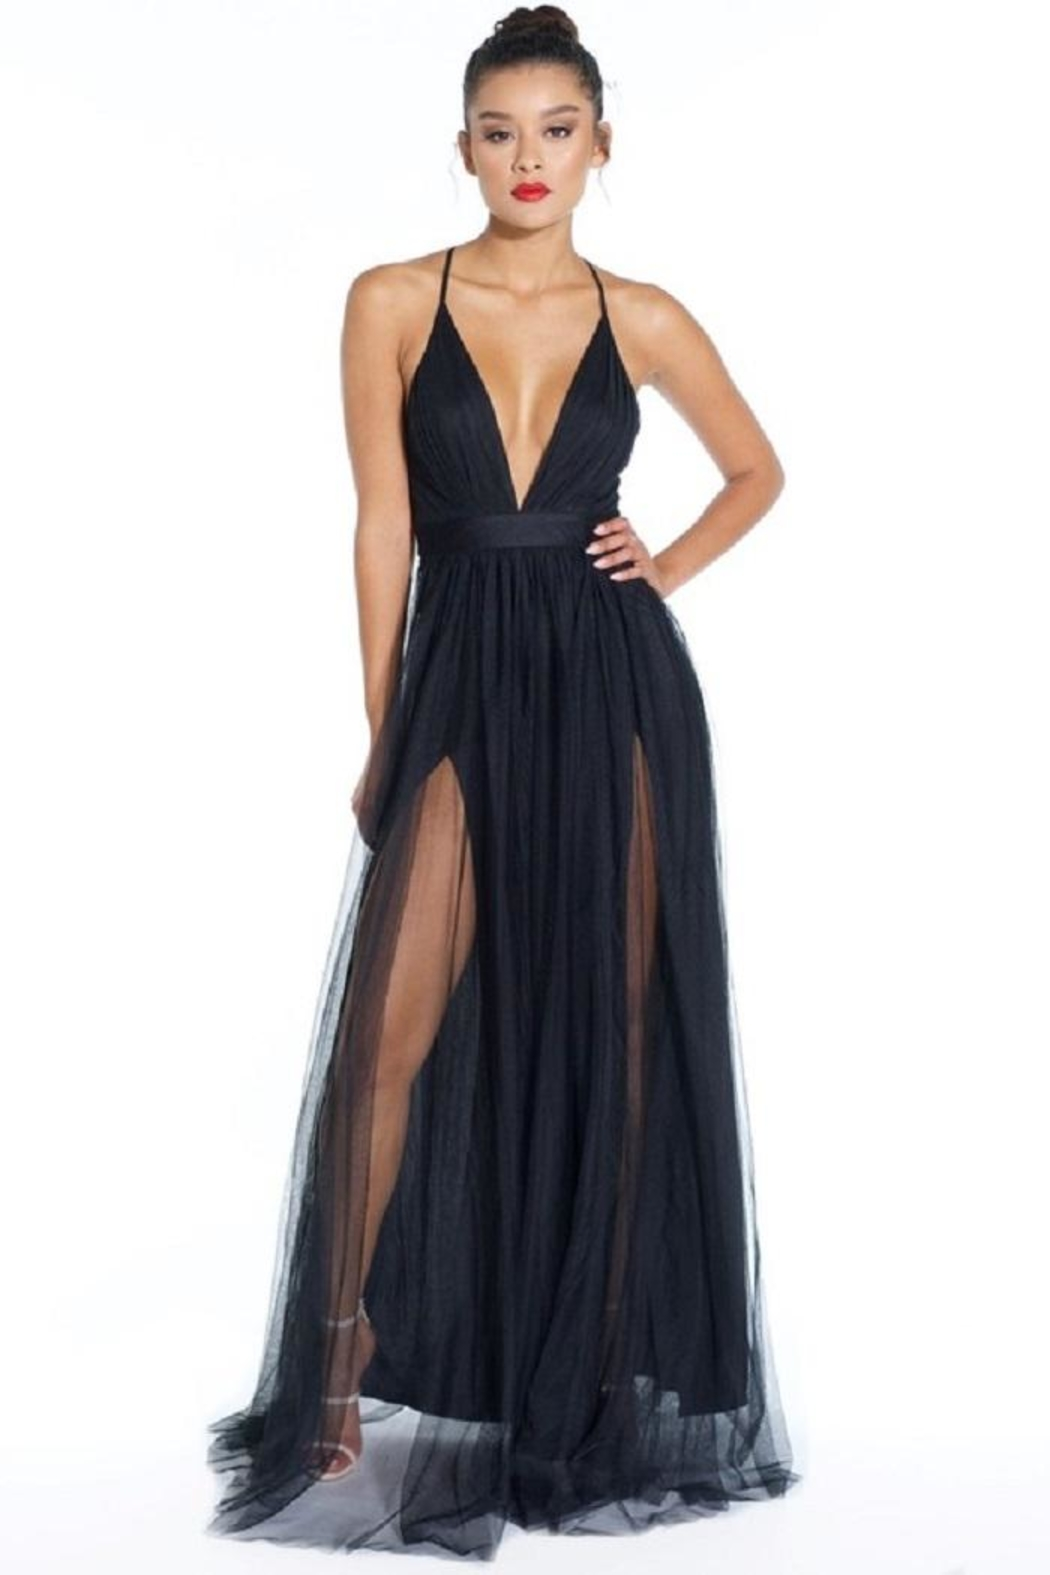 Luxxel Tulle Maxi Dress From New York City By Dor LDor